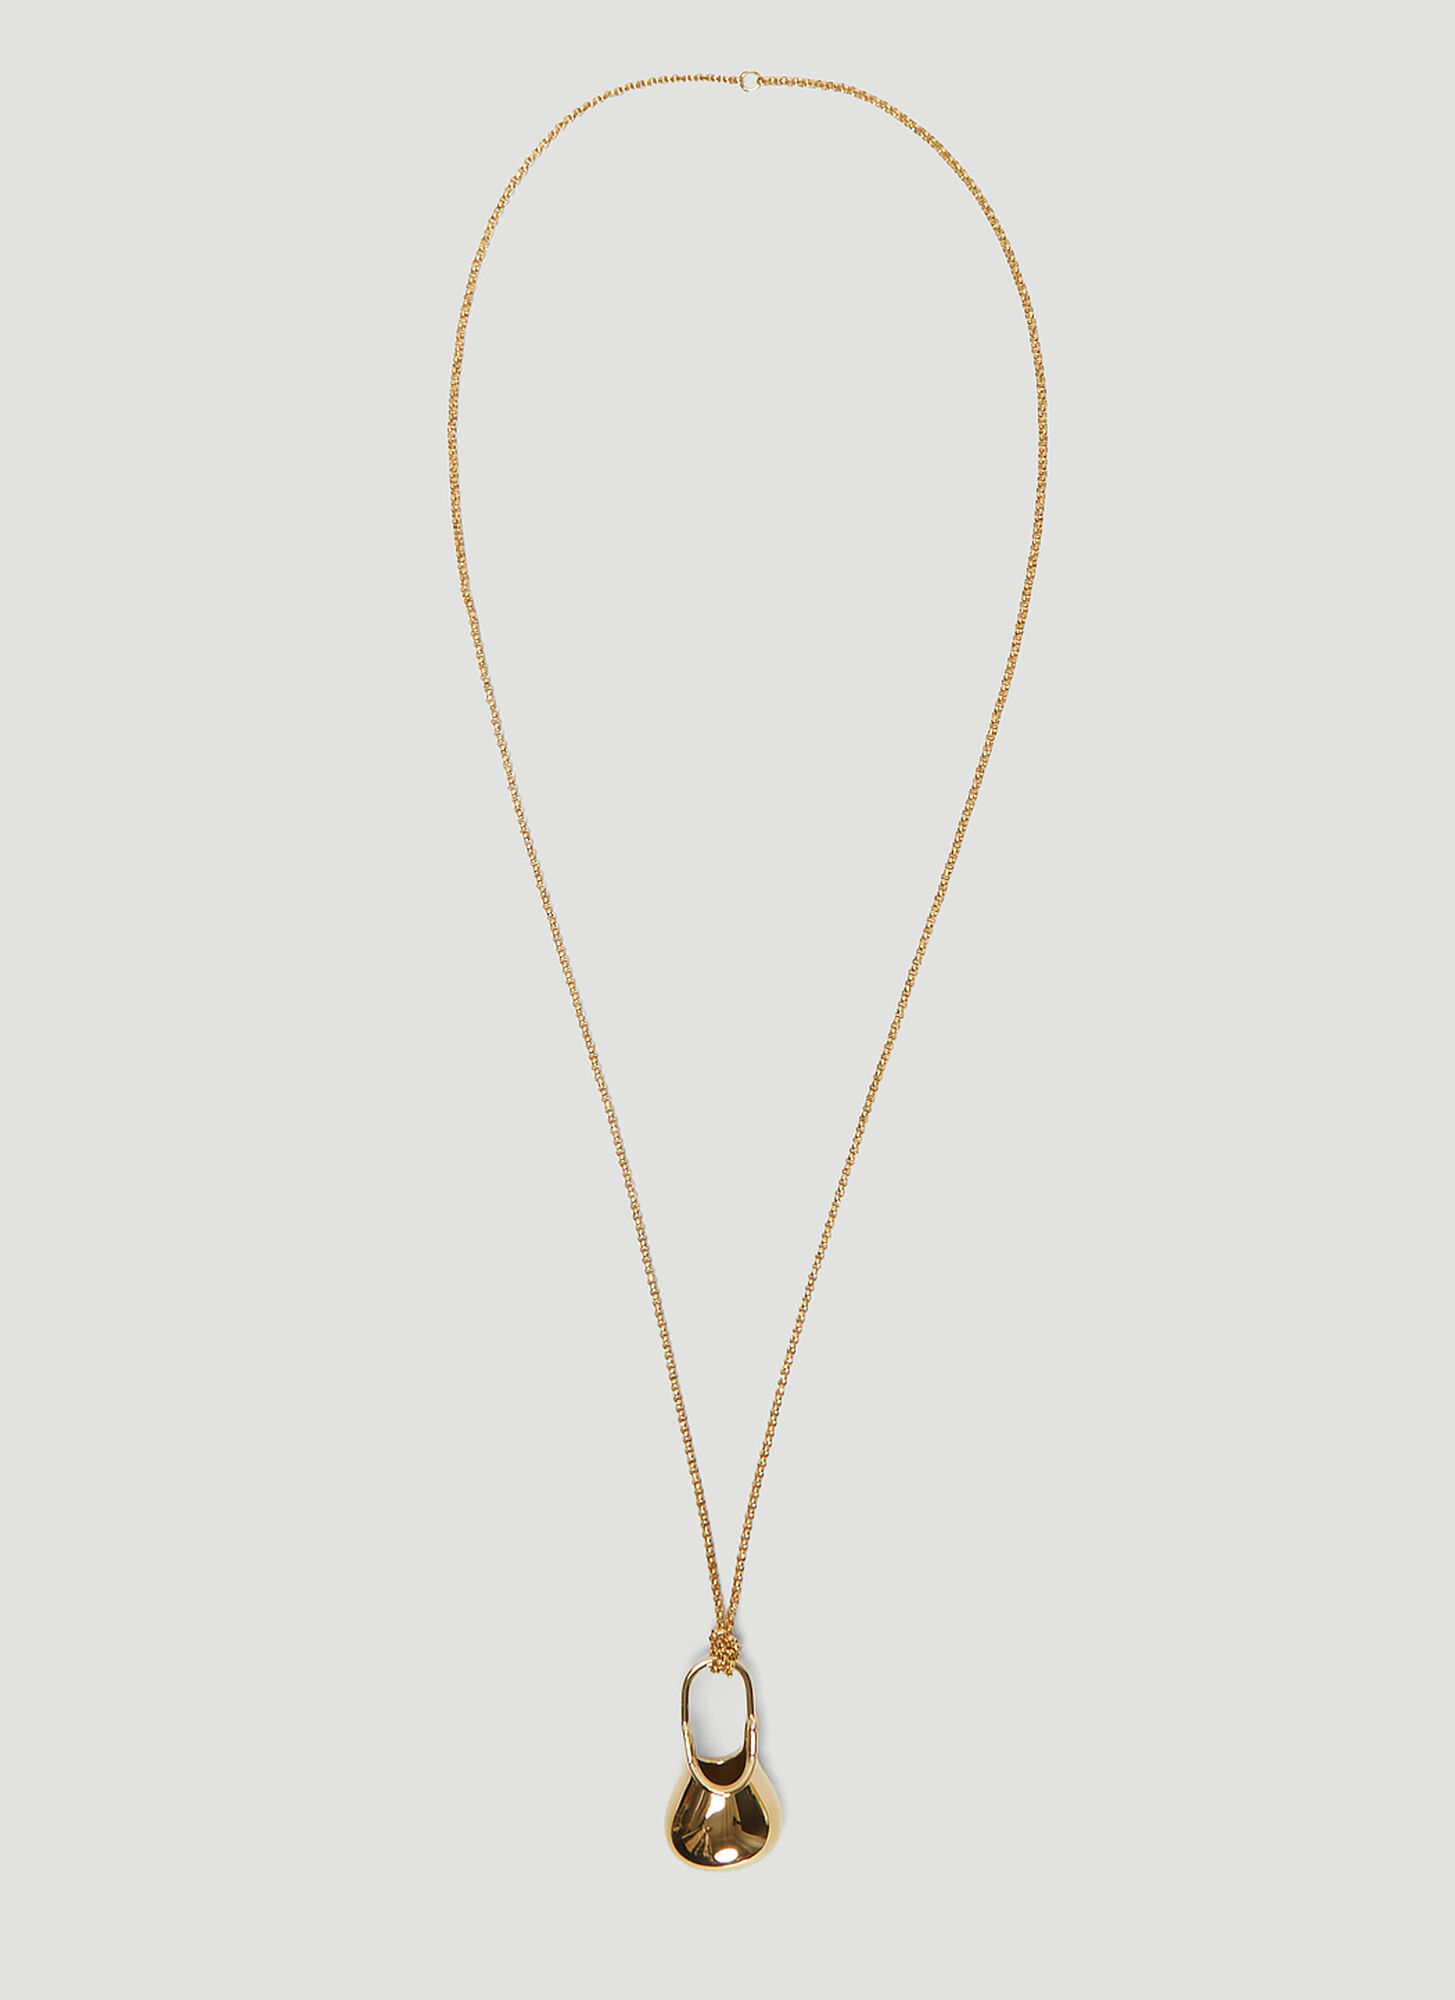 JW Anderson Jug Pendant Necklace in Gold